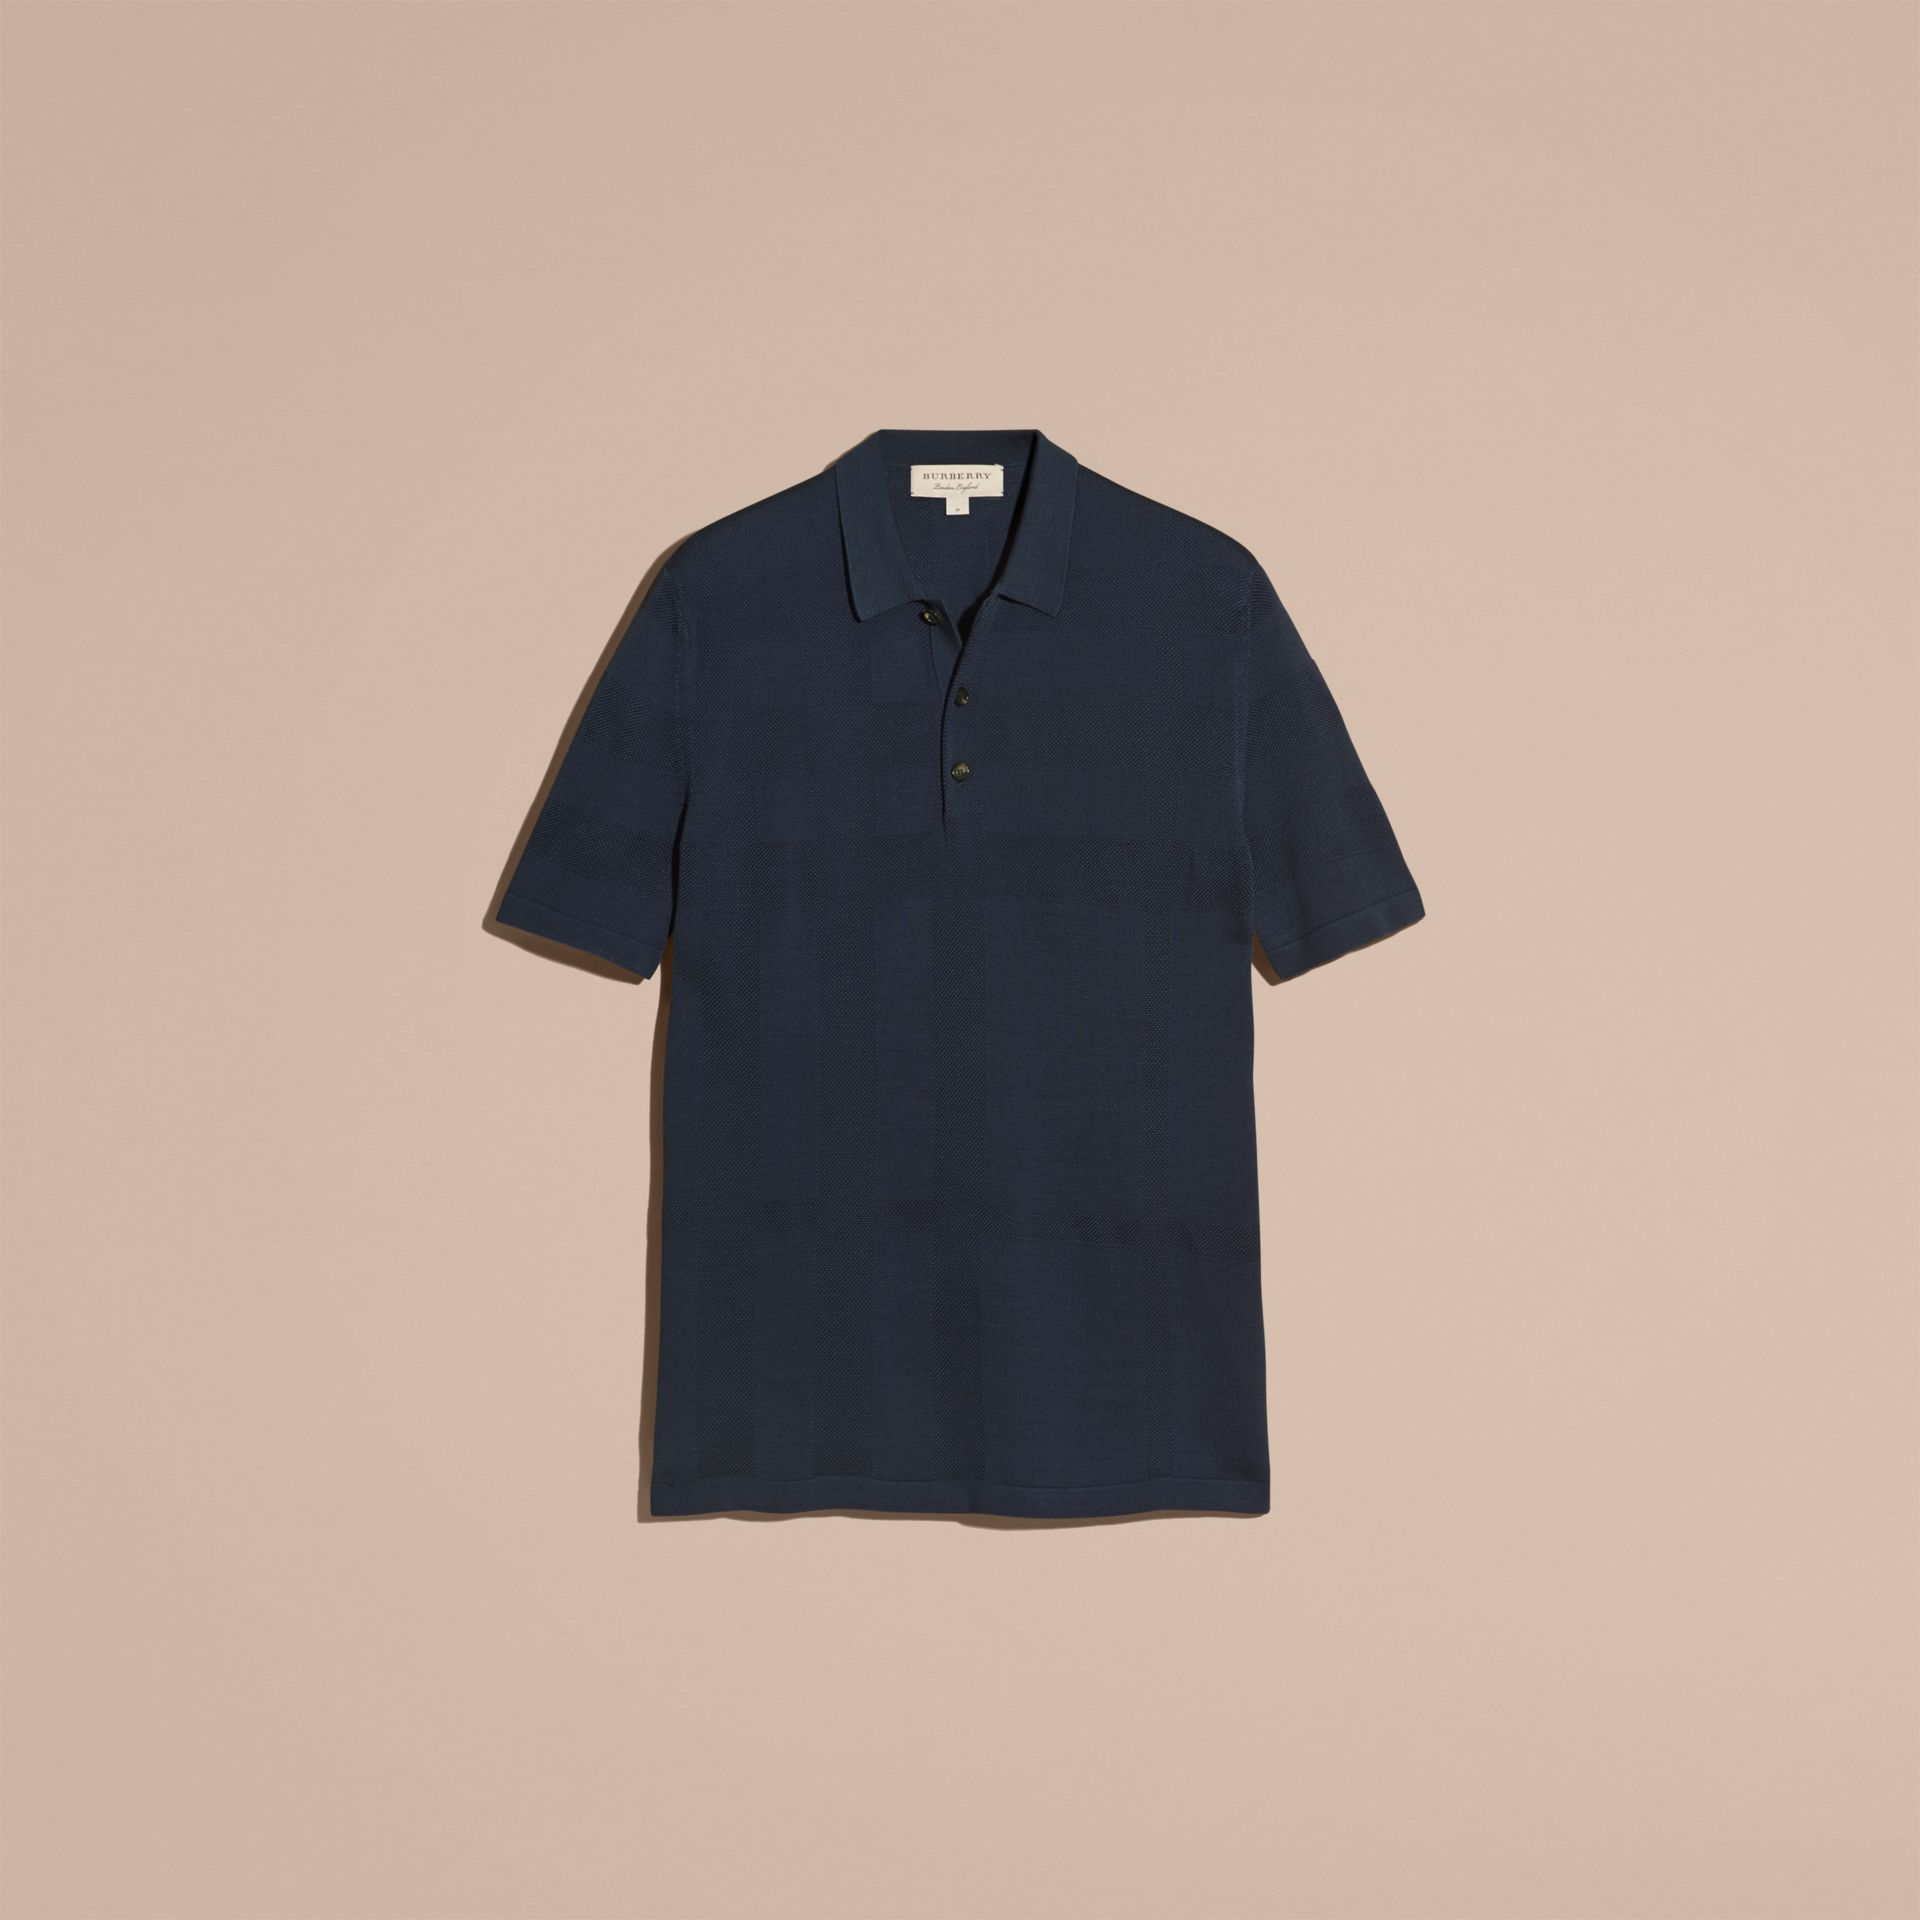 Check Jacquard Piqué Silk Cotton Polo Shirt in Navy - Men | Burberry Singapore - gallery image 4